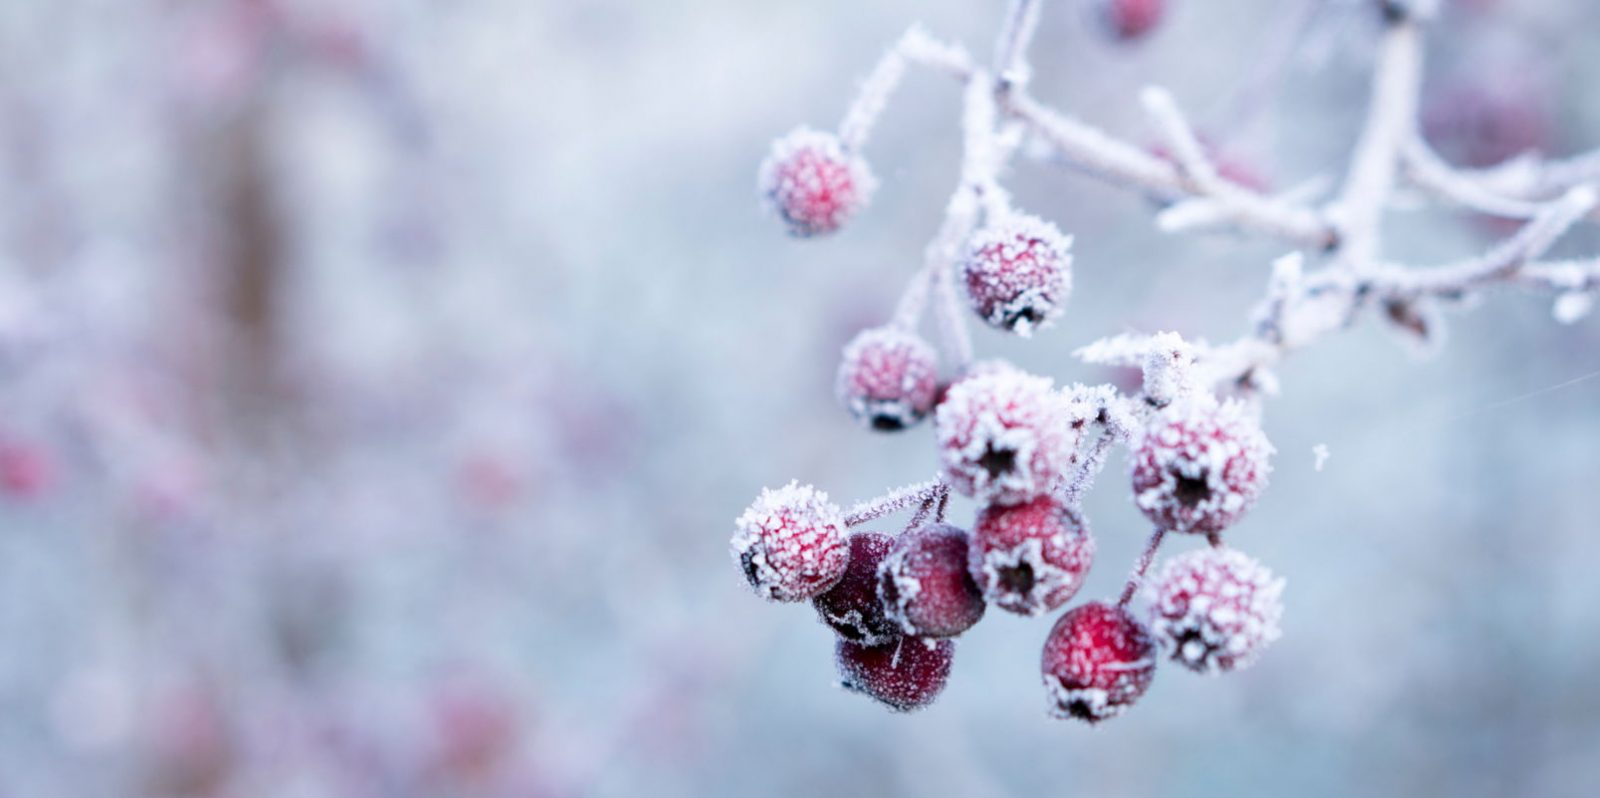 10 Great Winter Backgrounds For The Website Weblium